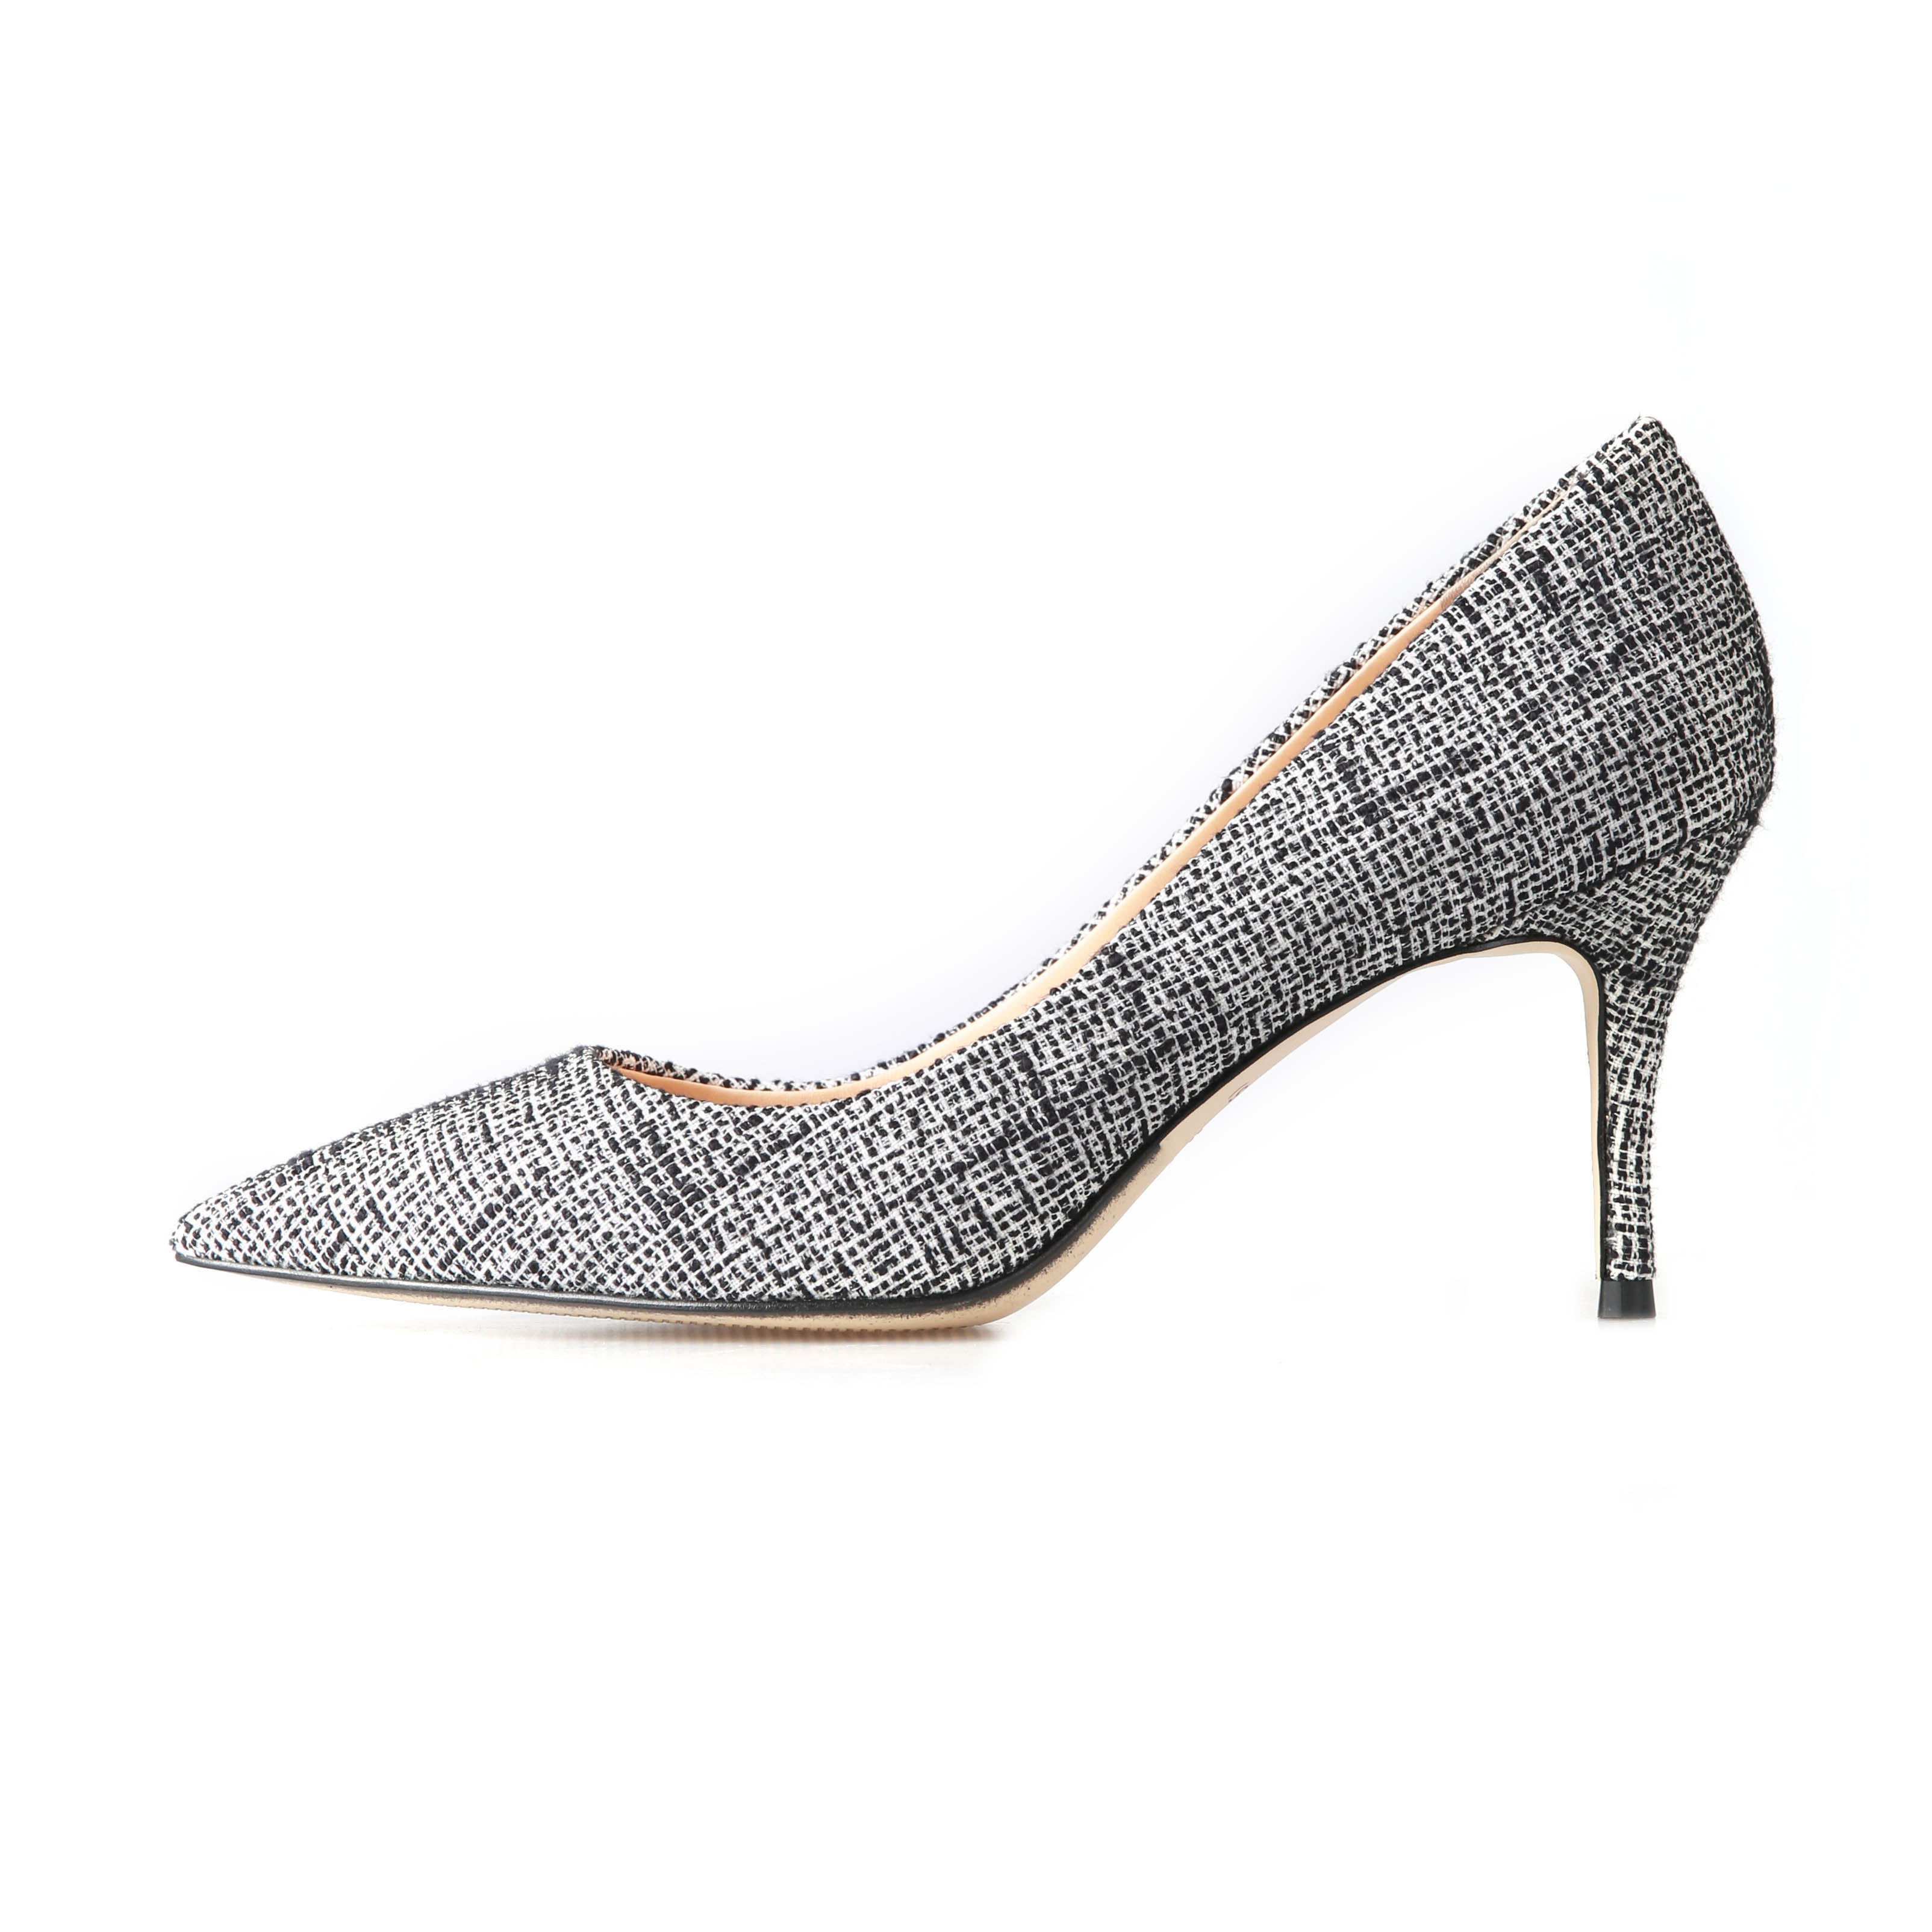 2019 New Ultra-high-heeled Women Feeling Shallow Pointed Women's Shoes Stiletto Elegant Comfort Shoes